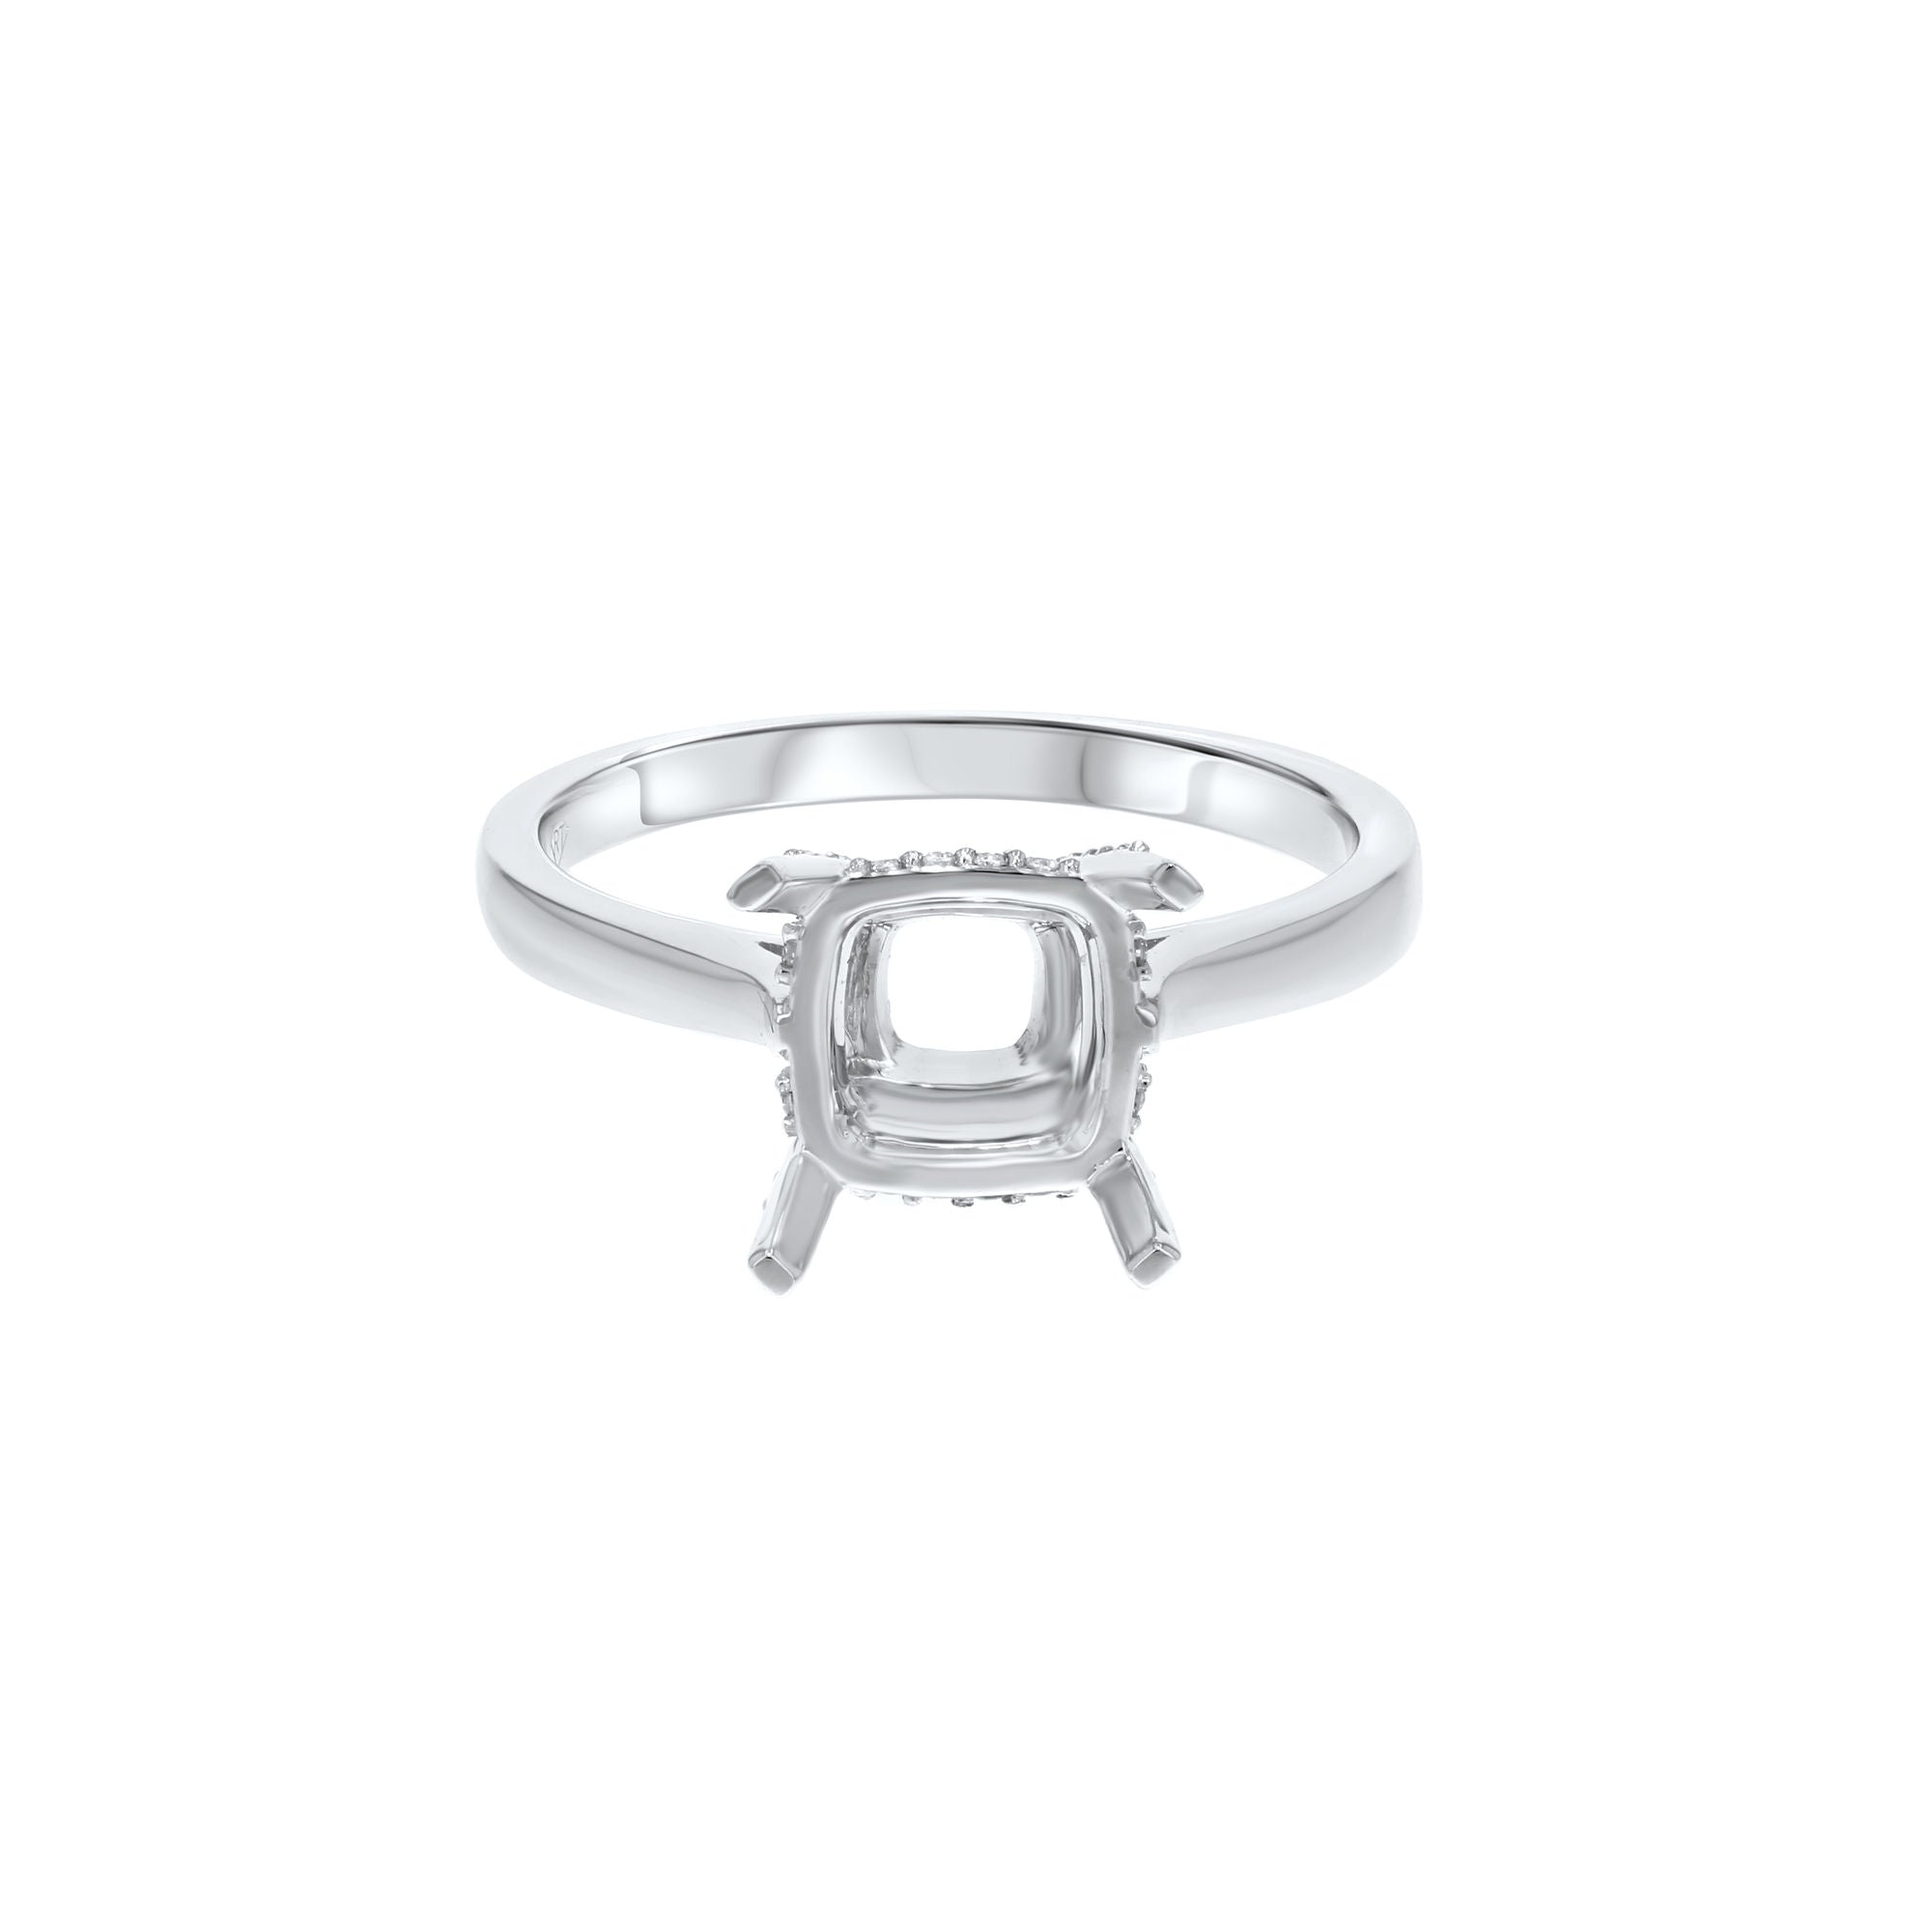 18K White Gold Semi-mount Ring, 0.11 Carats